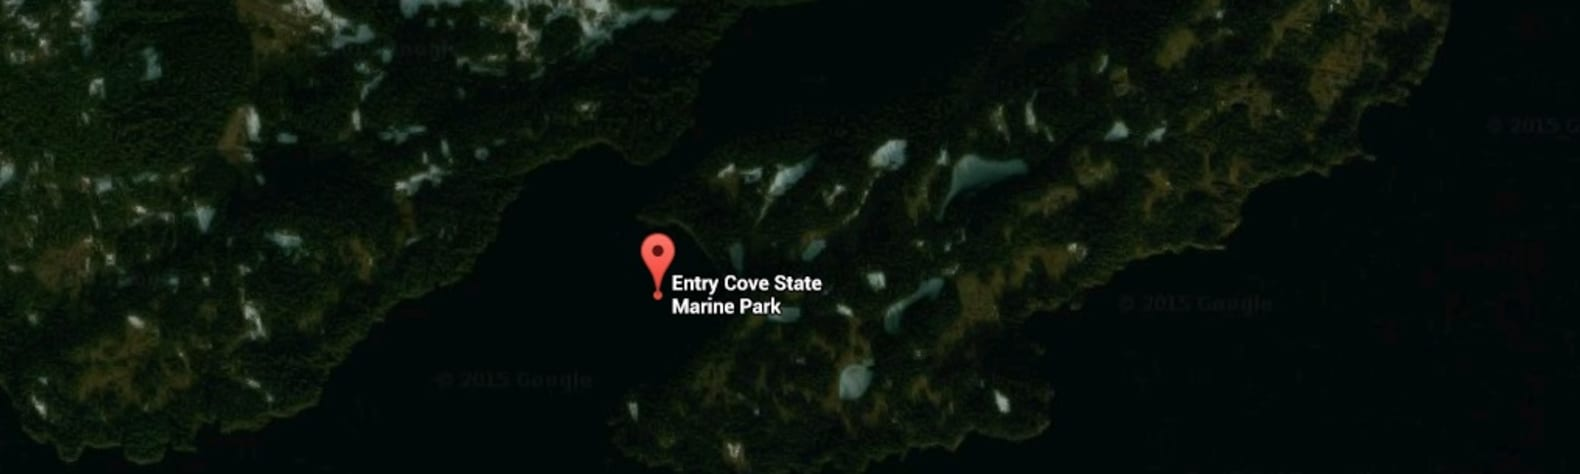 Entry Cove State Marine Park